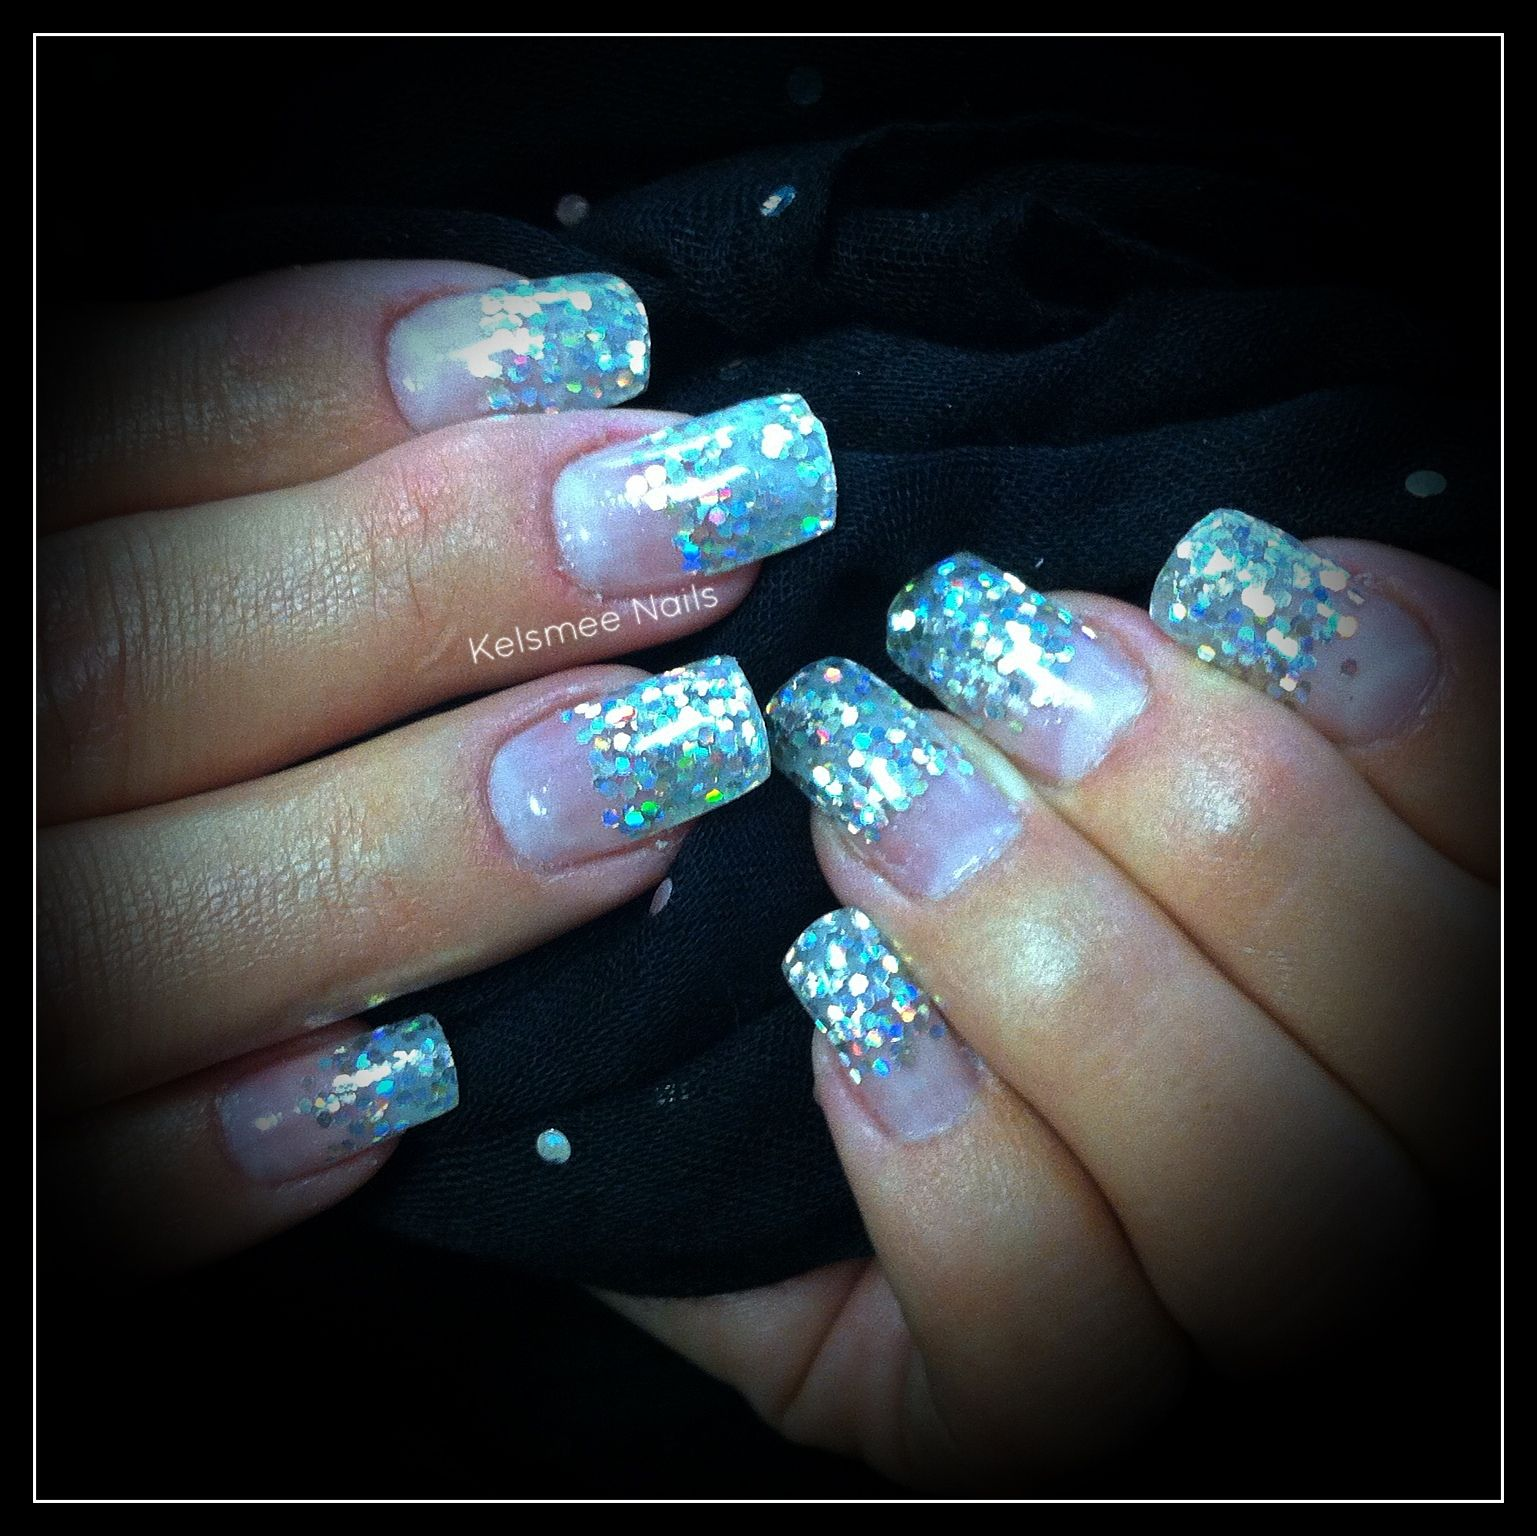 Young Nails gel glitternails